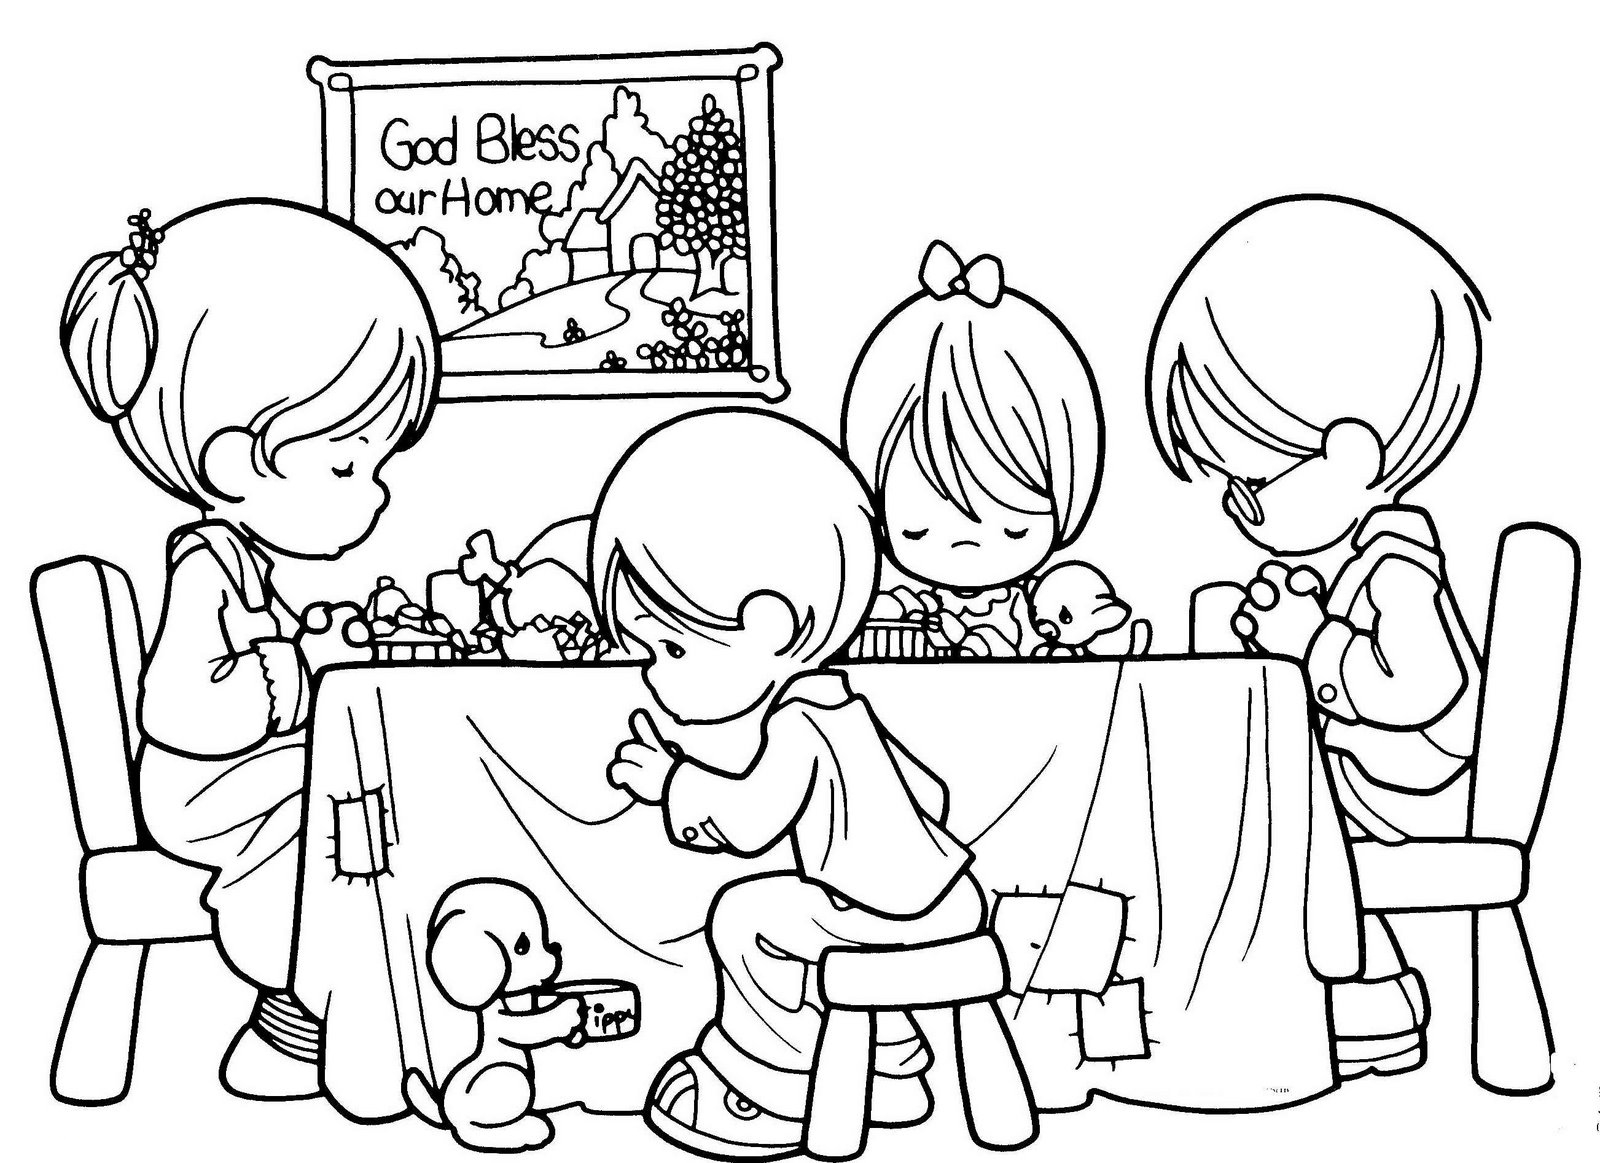 free printable christian coloring pages - photo#11